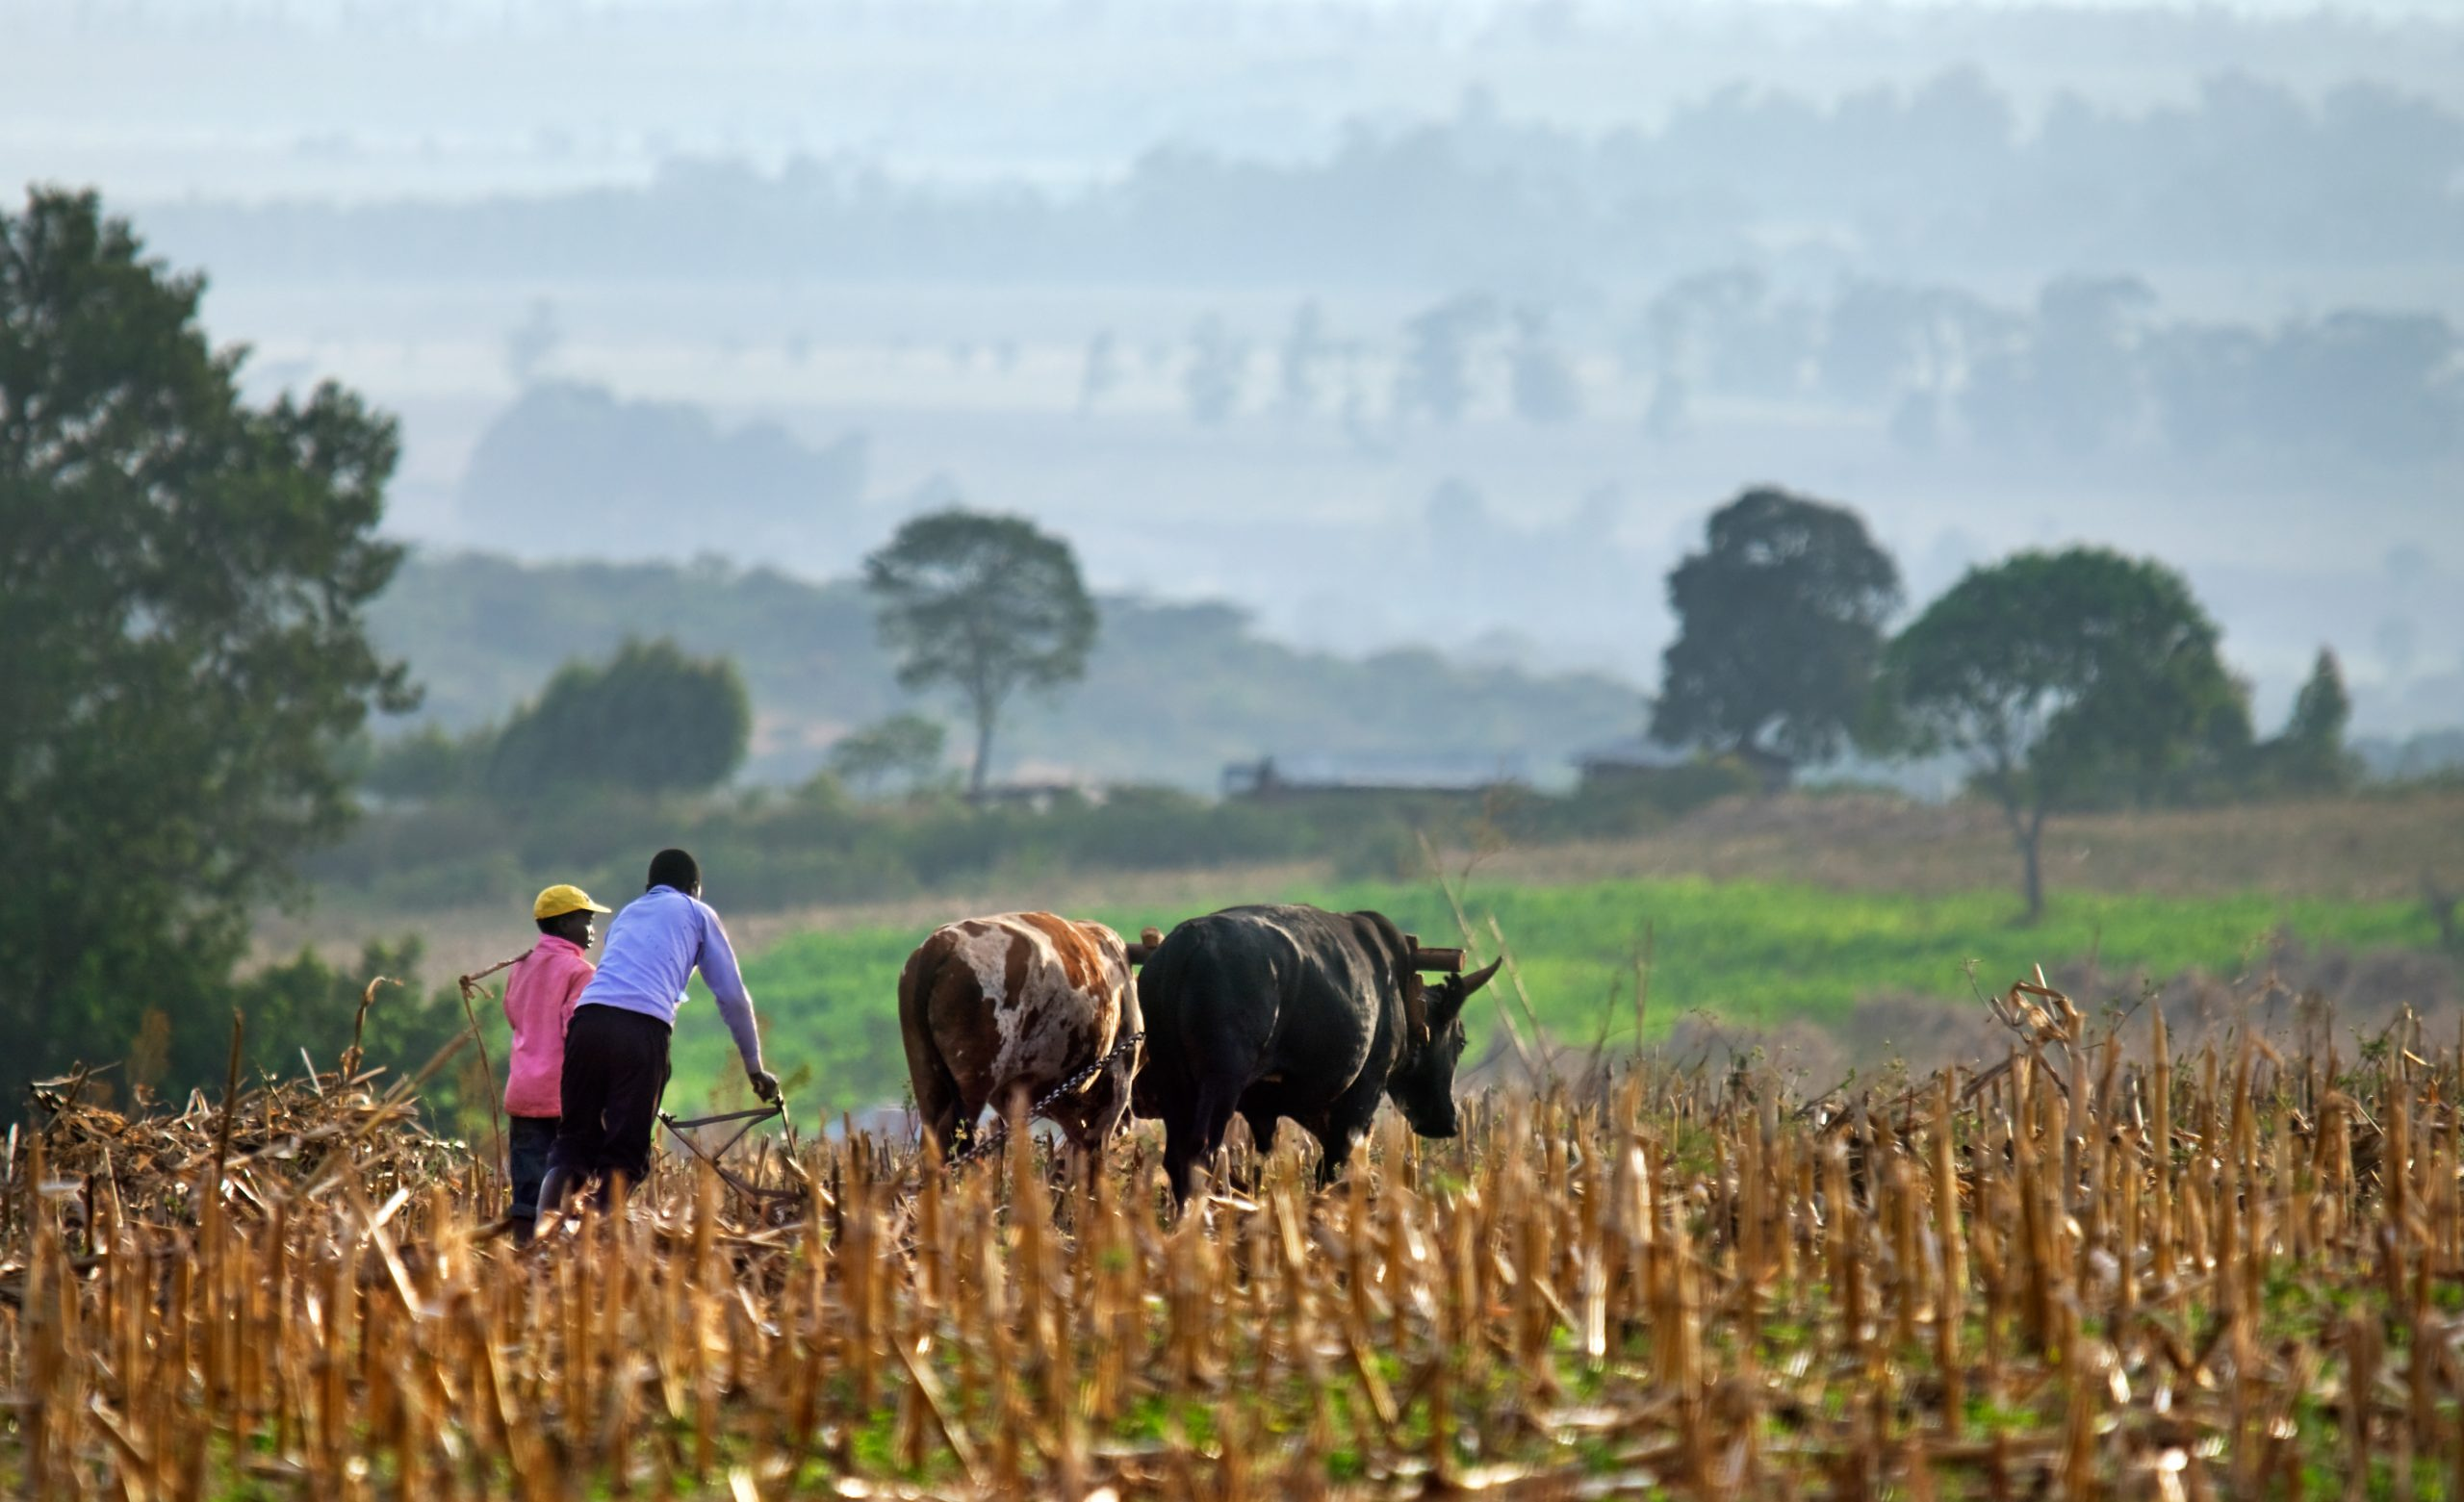 Agri-insurance key to higher yields in Africa